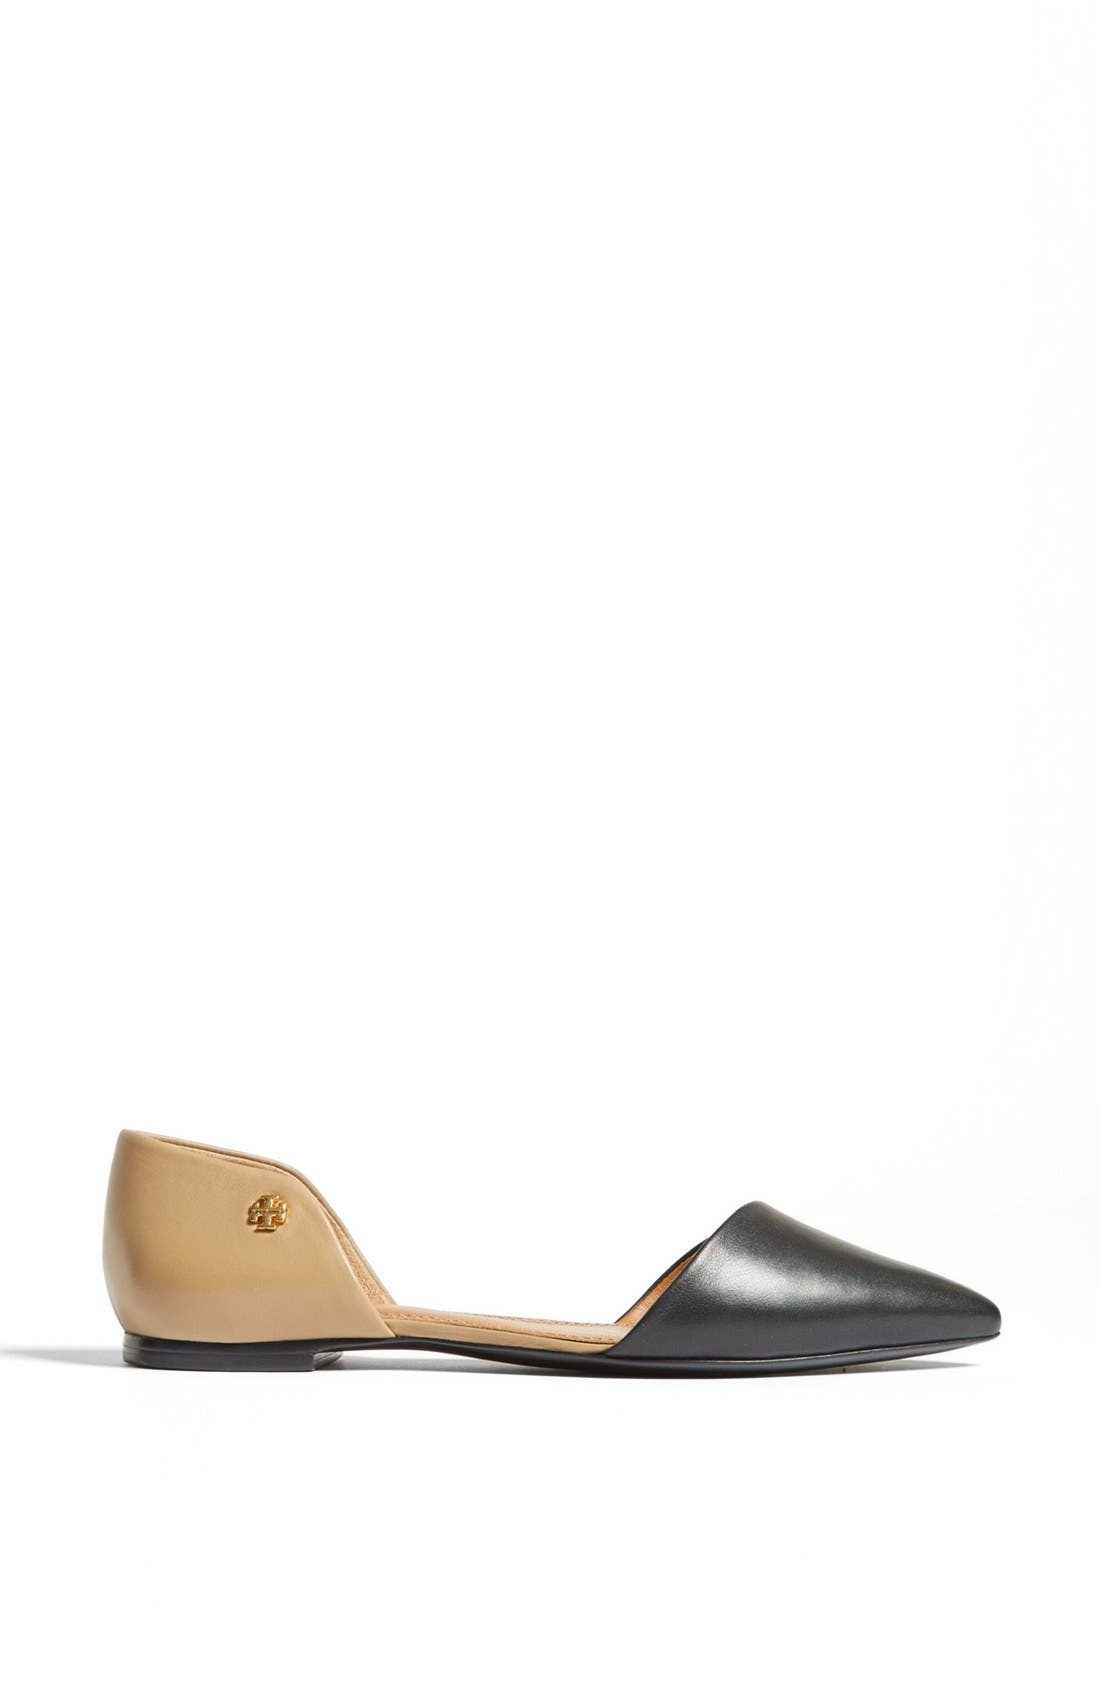 TORY BURCH,                             Leather Flat,                             Alternate thumbnail 3, color,                             008